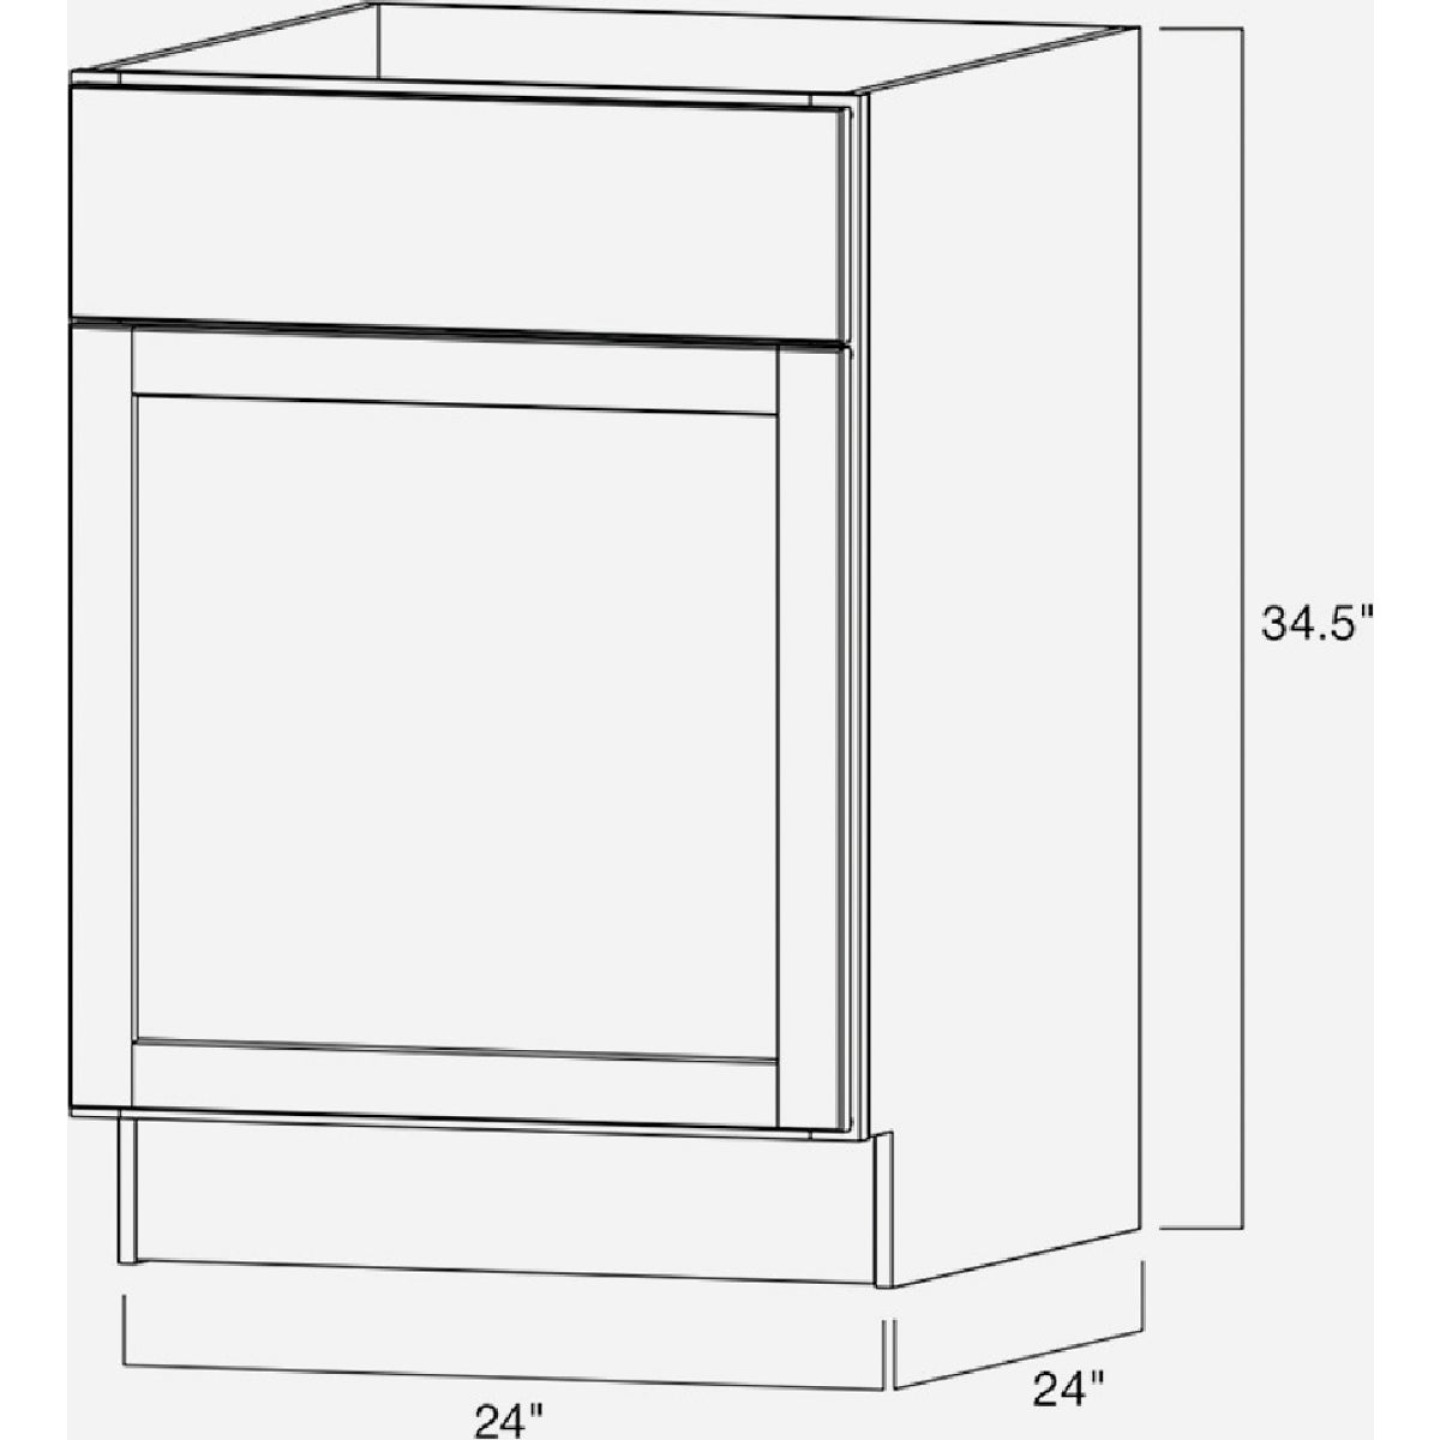 Continental Cabinets Andover Shaker 24 In. W x 34 In. H x 24 In. D White Thermofoil Base Kitchen Cabinet Image 4